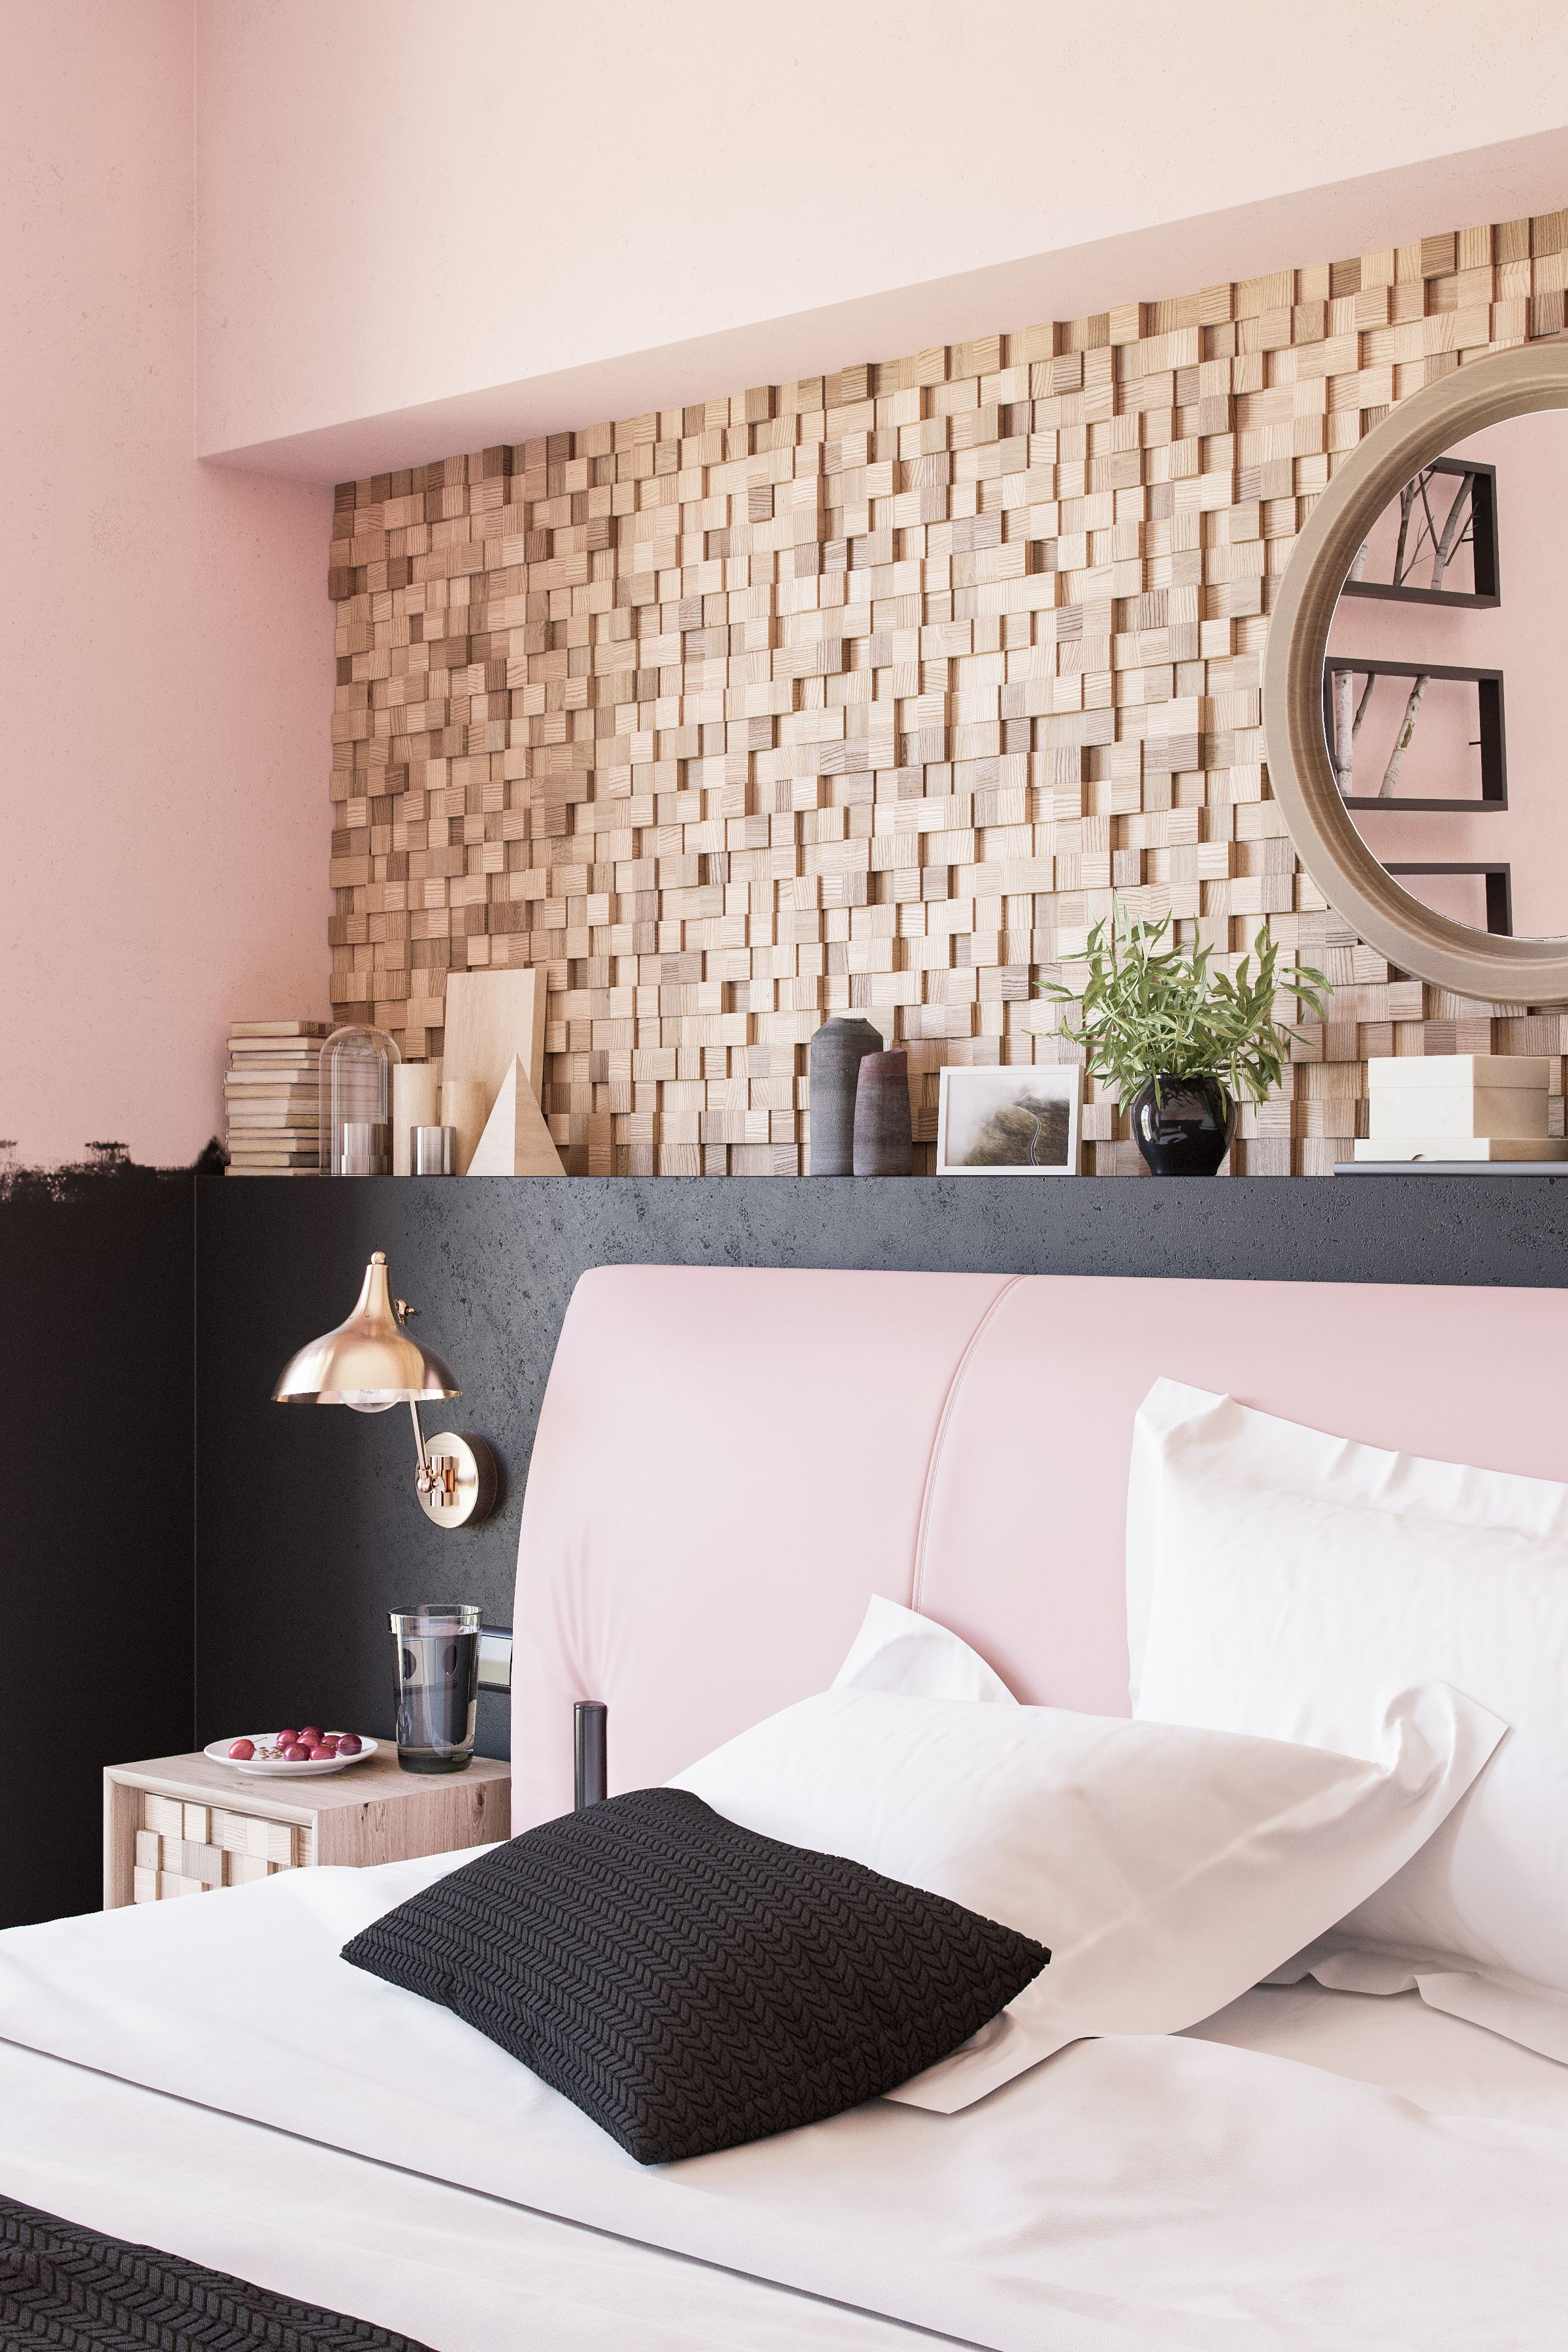 Diy Wood Trim Accent Wall Accent Wall Bedroom Wall Decor Bedroom Bedroom Wall